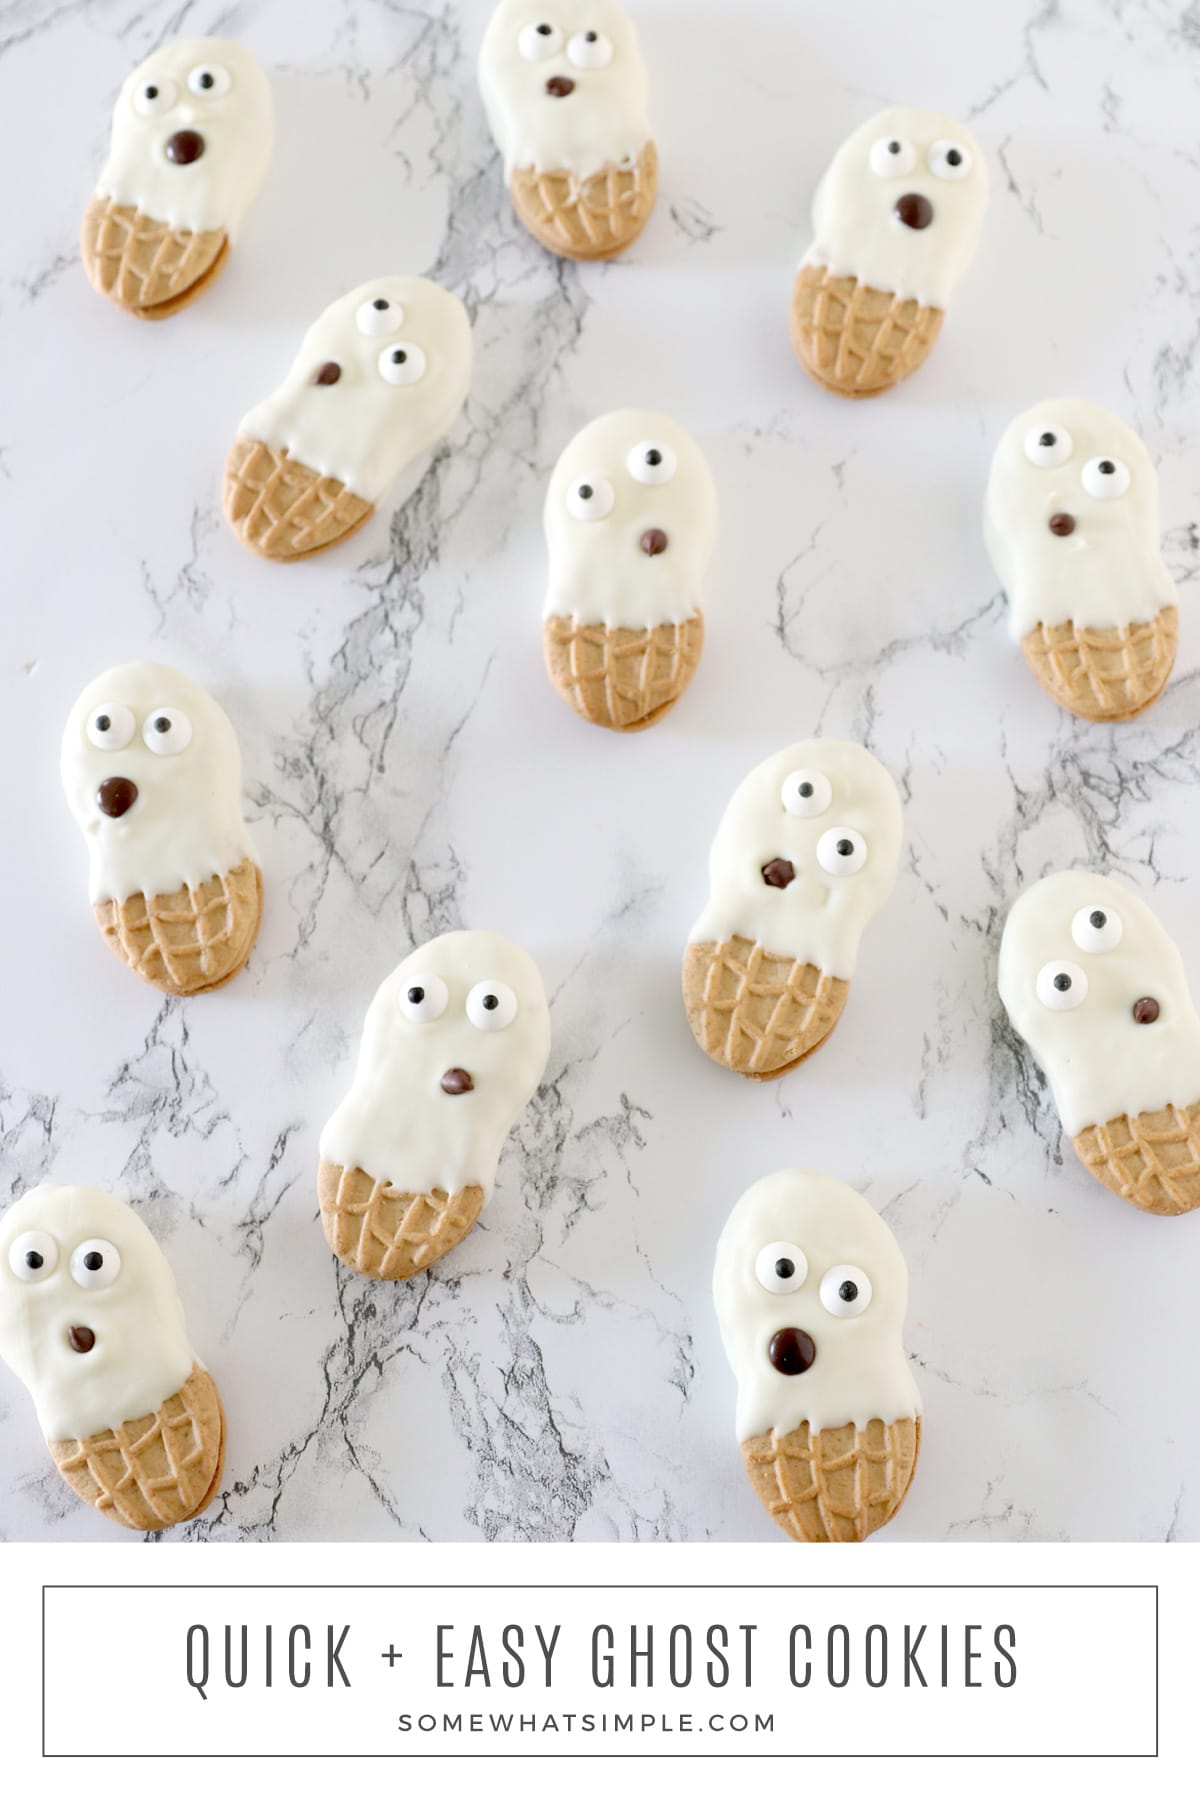 These simple ghost cookies are the perfect Halloween treat to make with the kids! They're made with only 3 ingredients and require almost no prep to pull together. via @somewhatsimple